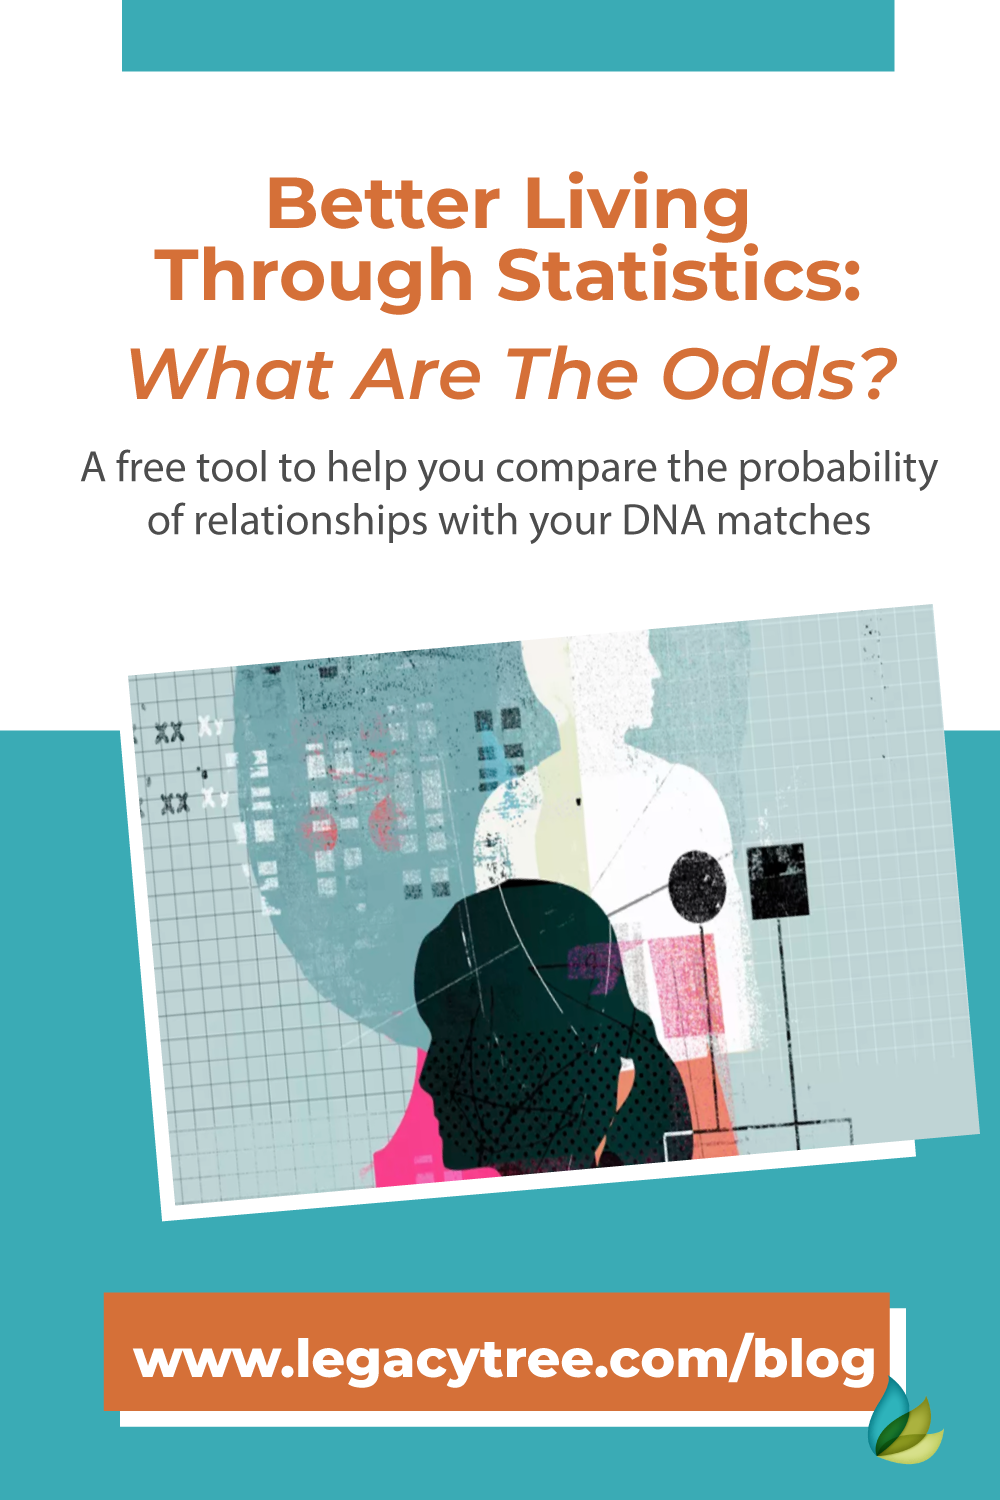 The What Are the Odds DNA tool is a free resource to help you compare the probability of relationships with your DNA matches. Learn more!